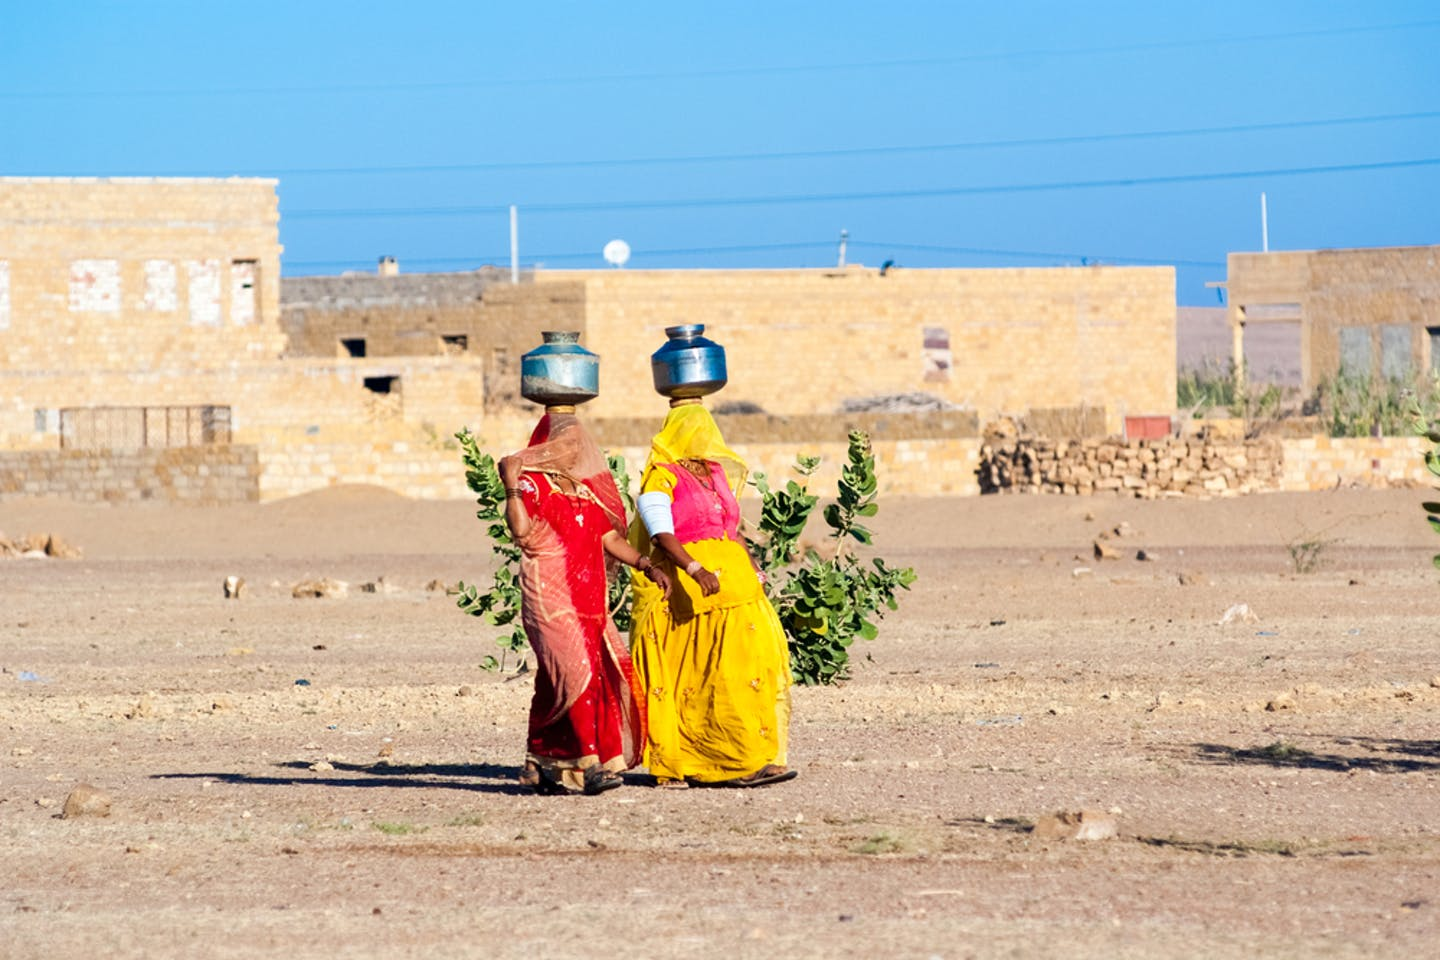 rajasthani women water